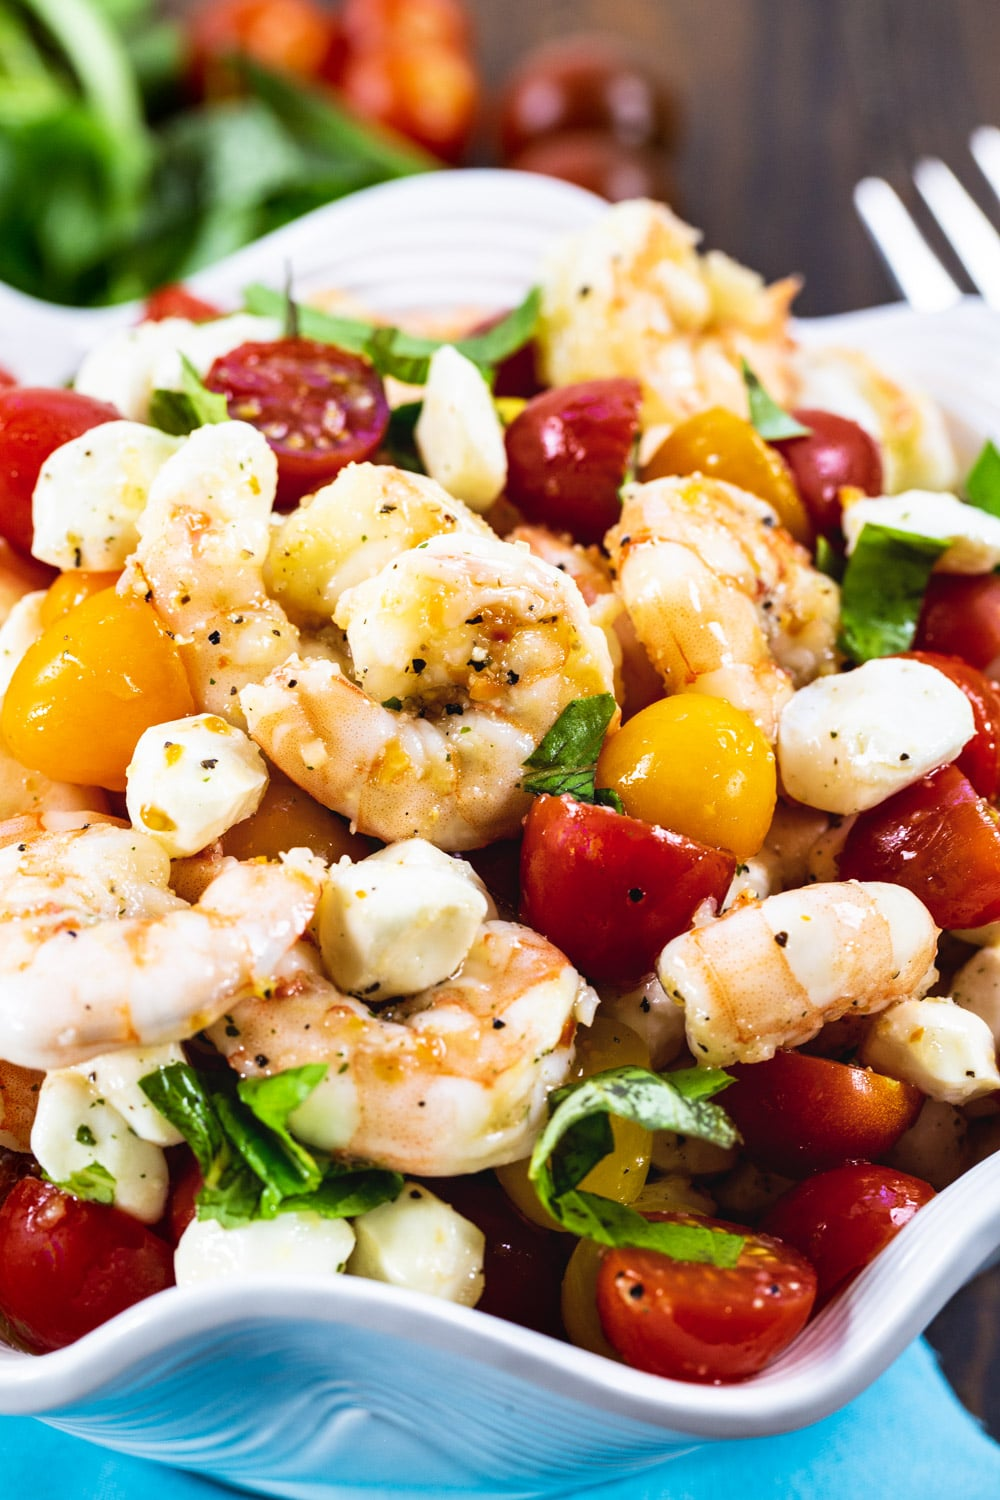 Shrimp Salad with cherry tomatoes and mozzarella balls in white serving bowl.